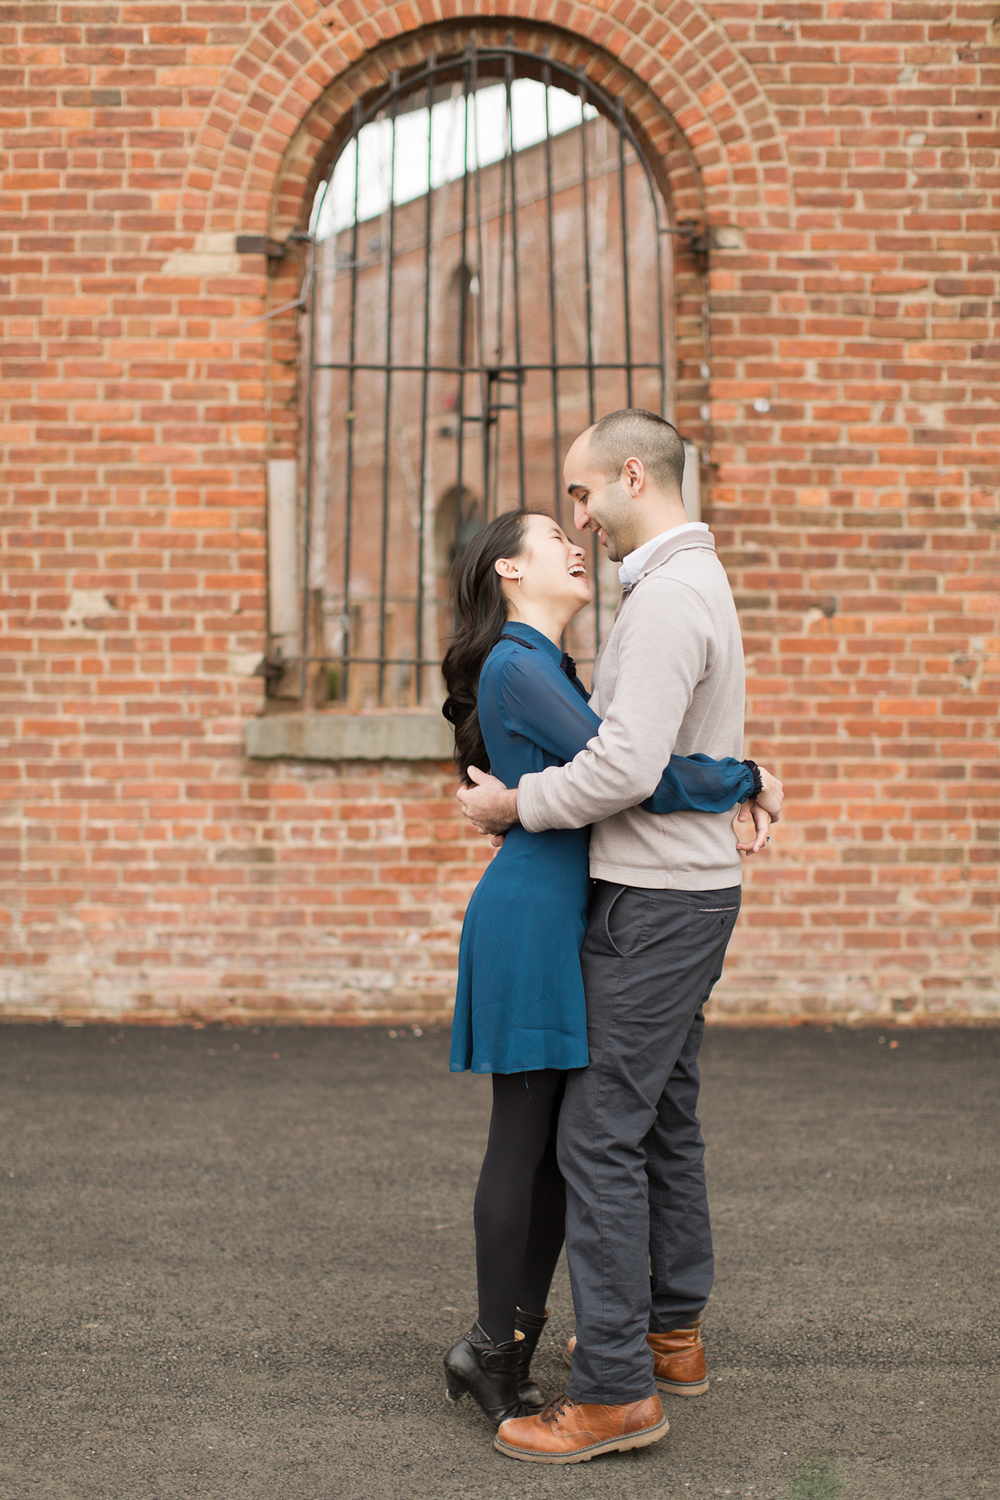 Melissa Kruse Photography - Kristine & David Engagement Photos-66.jpg